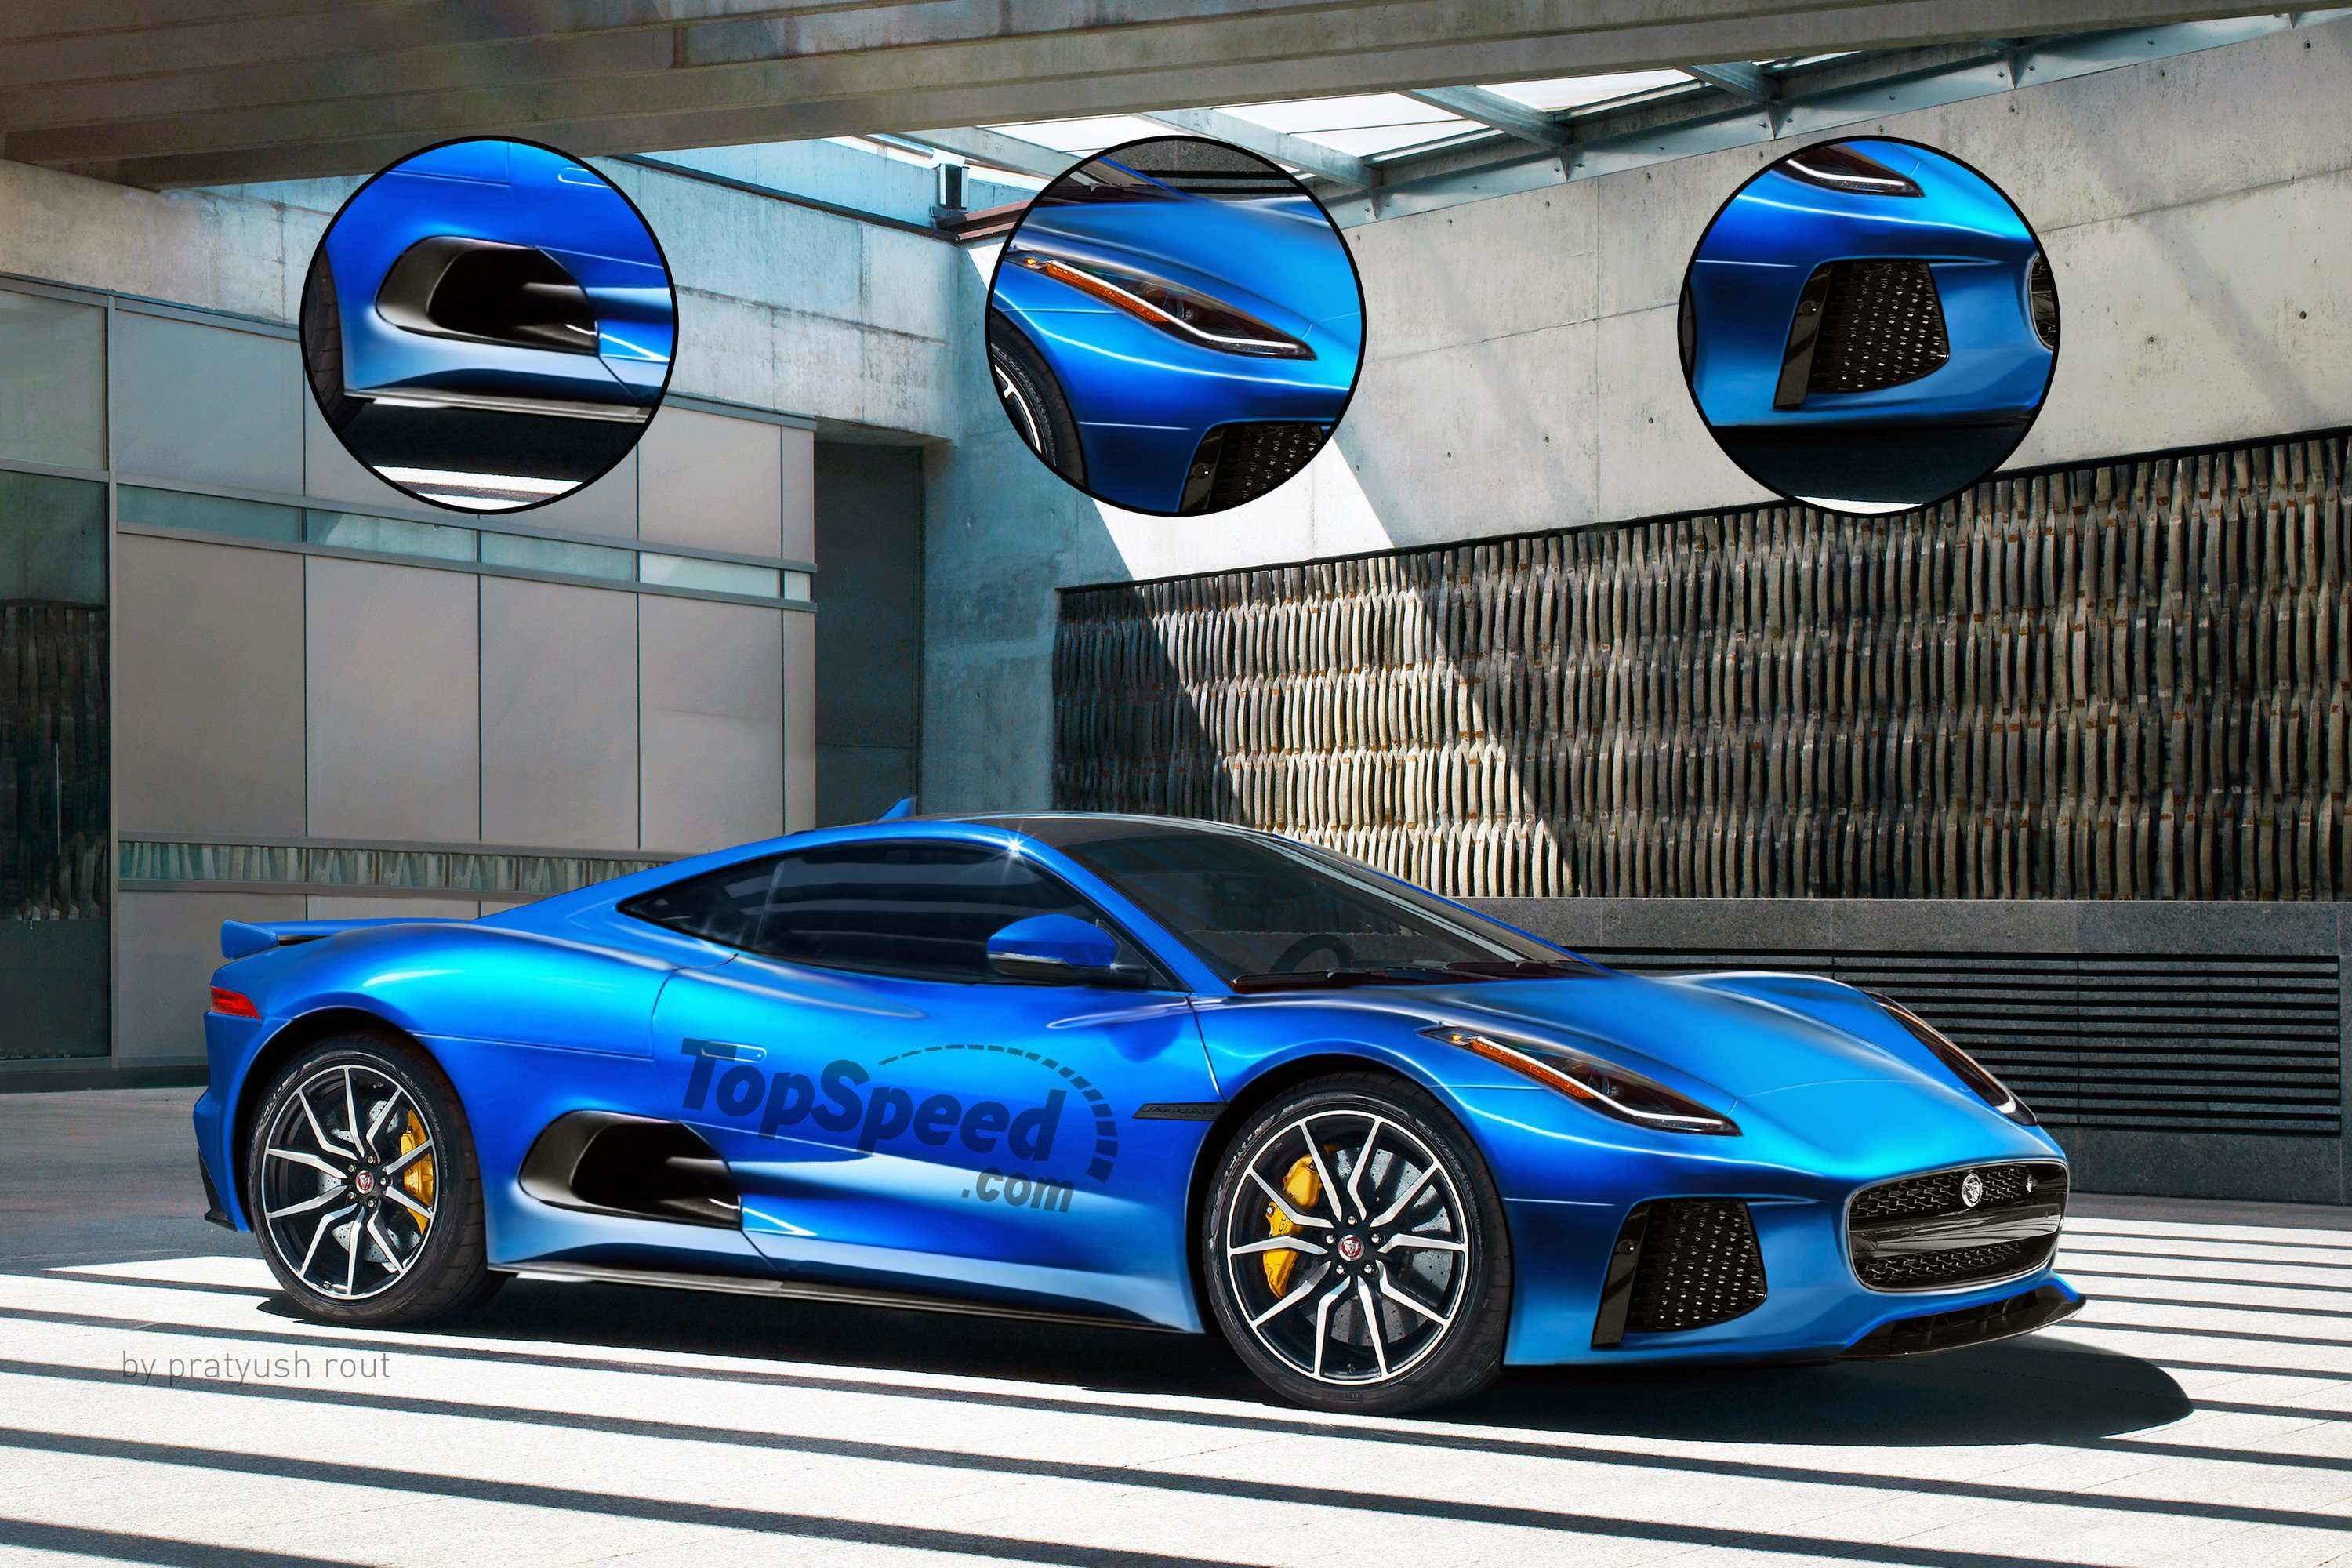 36 Concept of 2020 Jaguar Electric Rumors for 2020 Jaguar Electric